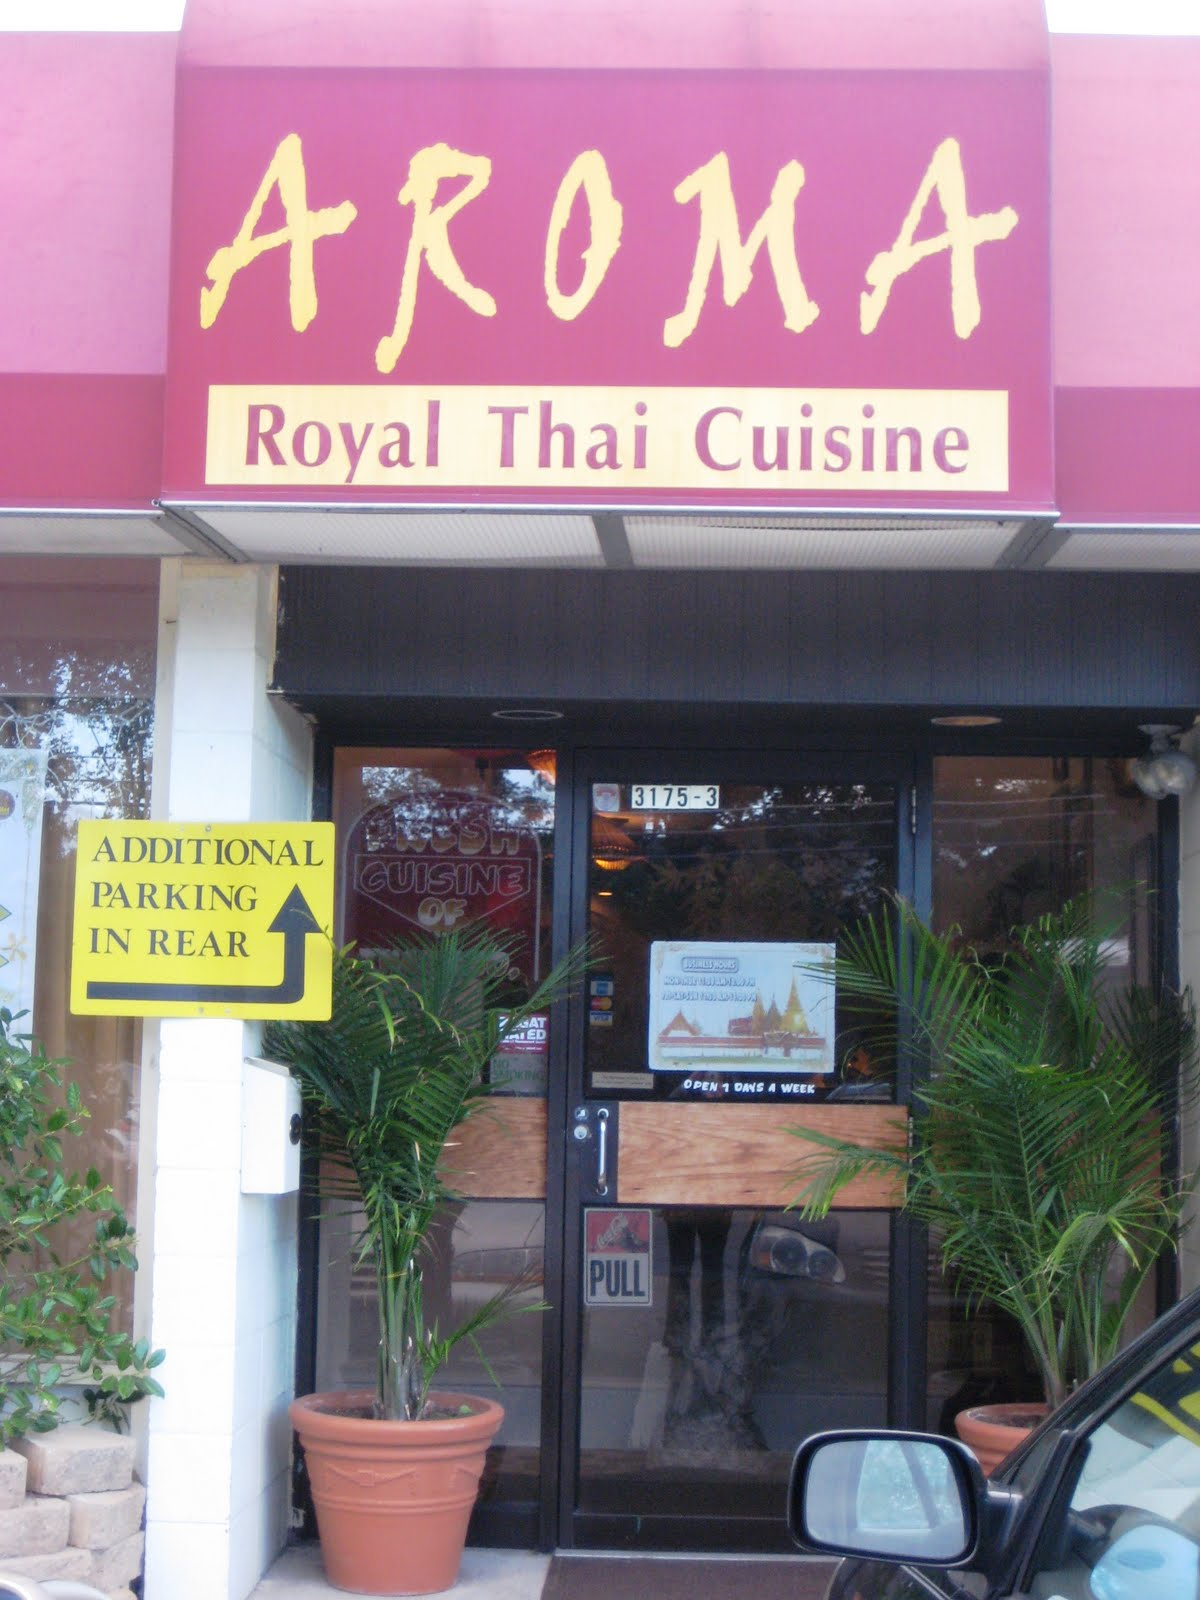 Aroma royal thai cuisine franklin park nj central nj for Aroma royal thai cuisine nj